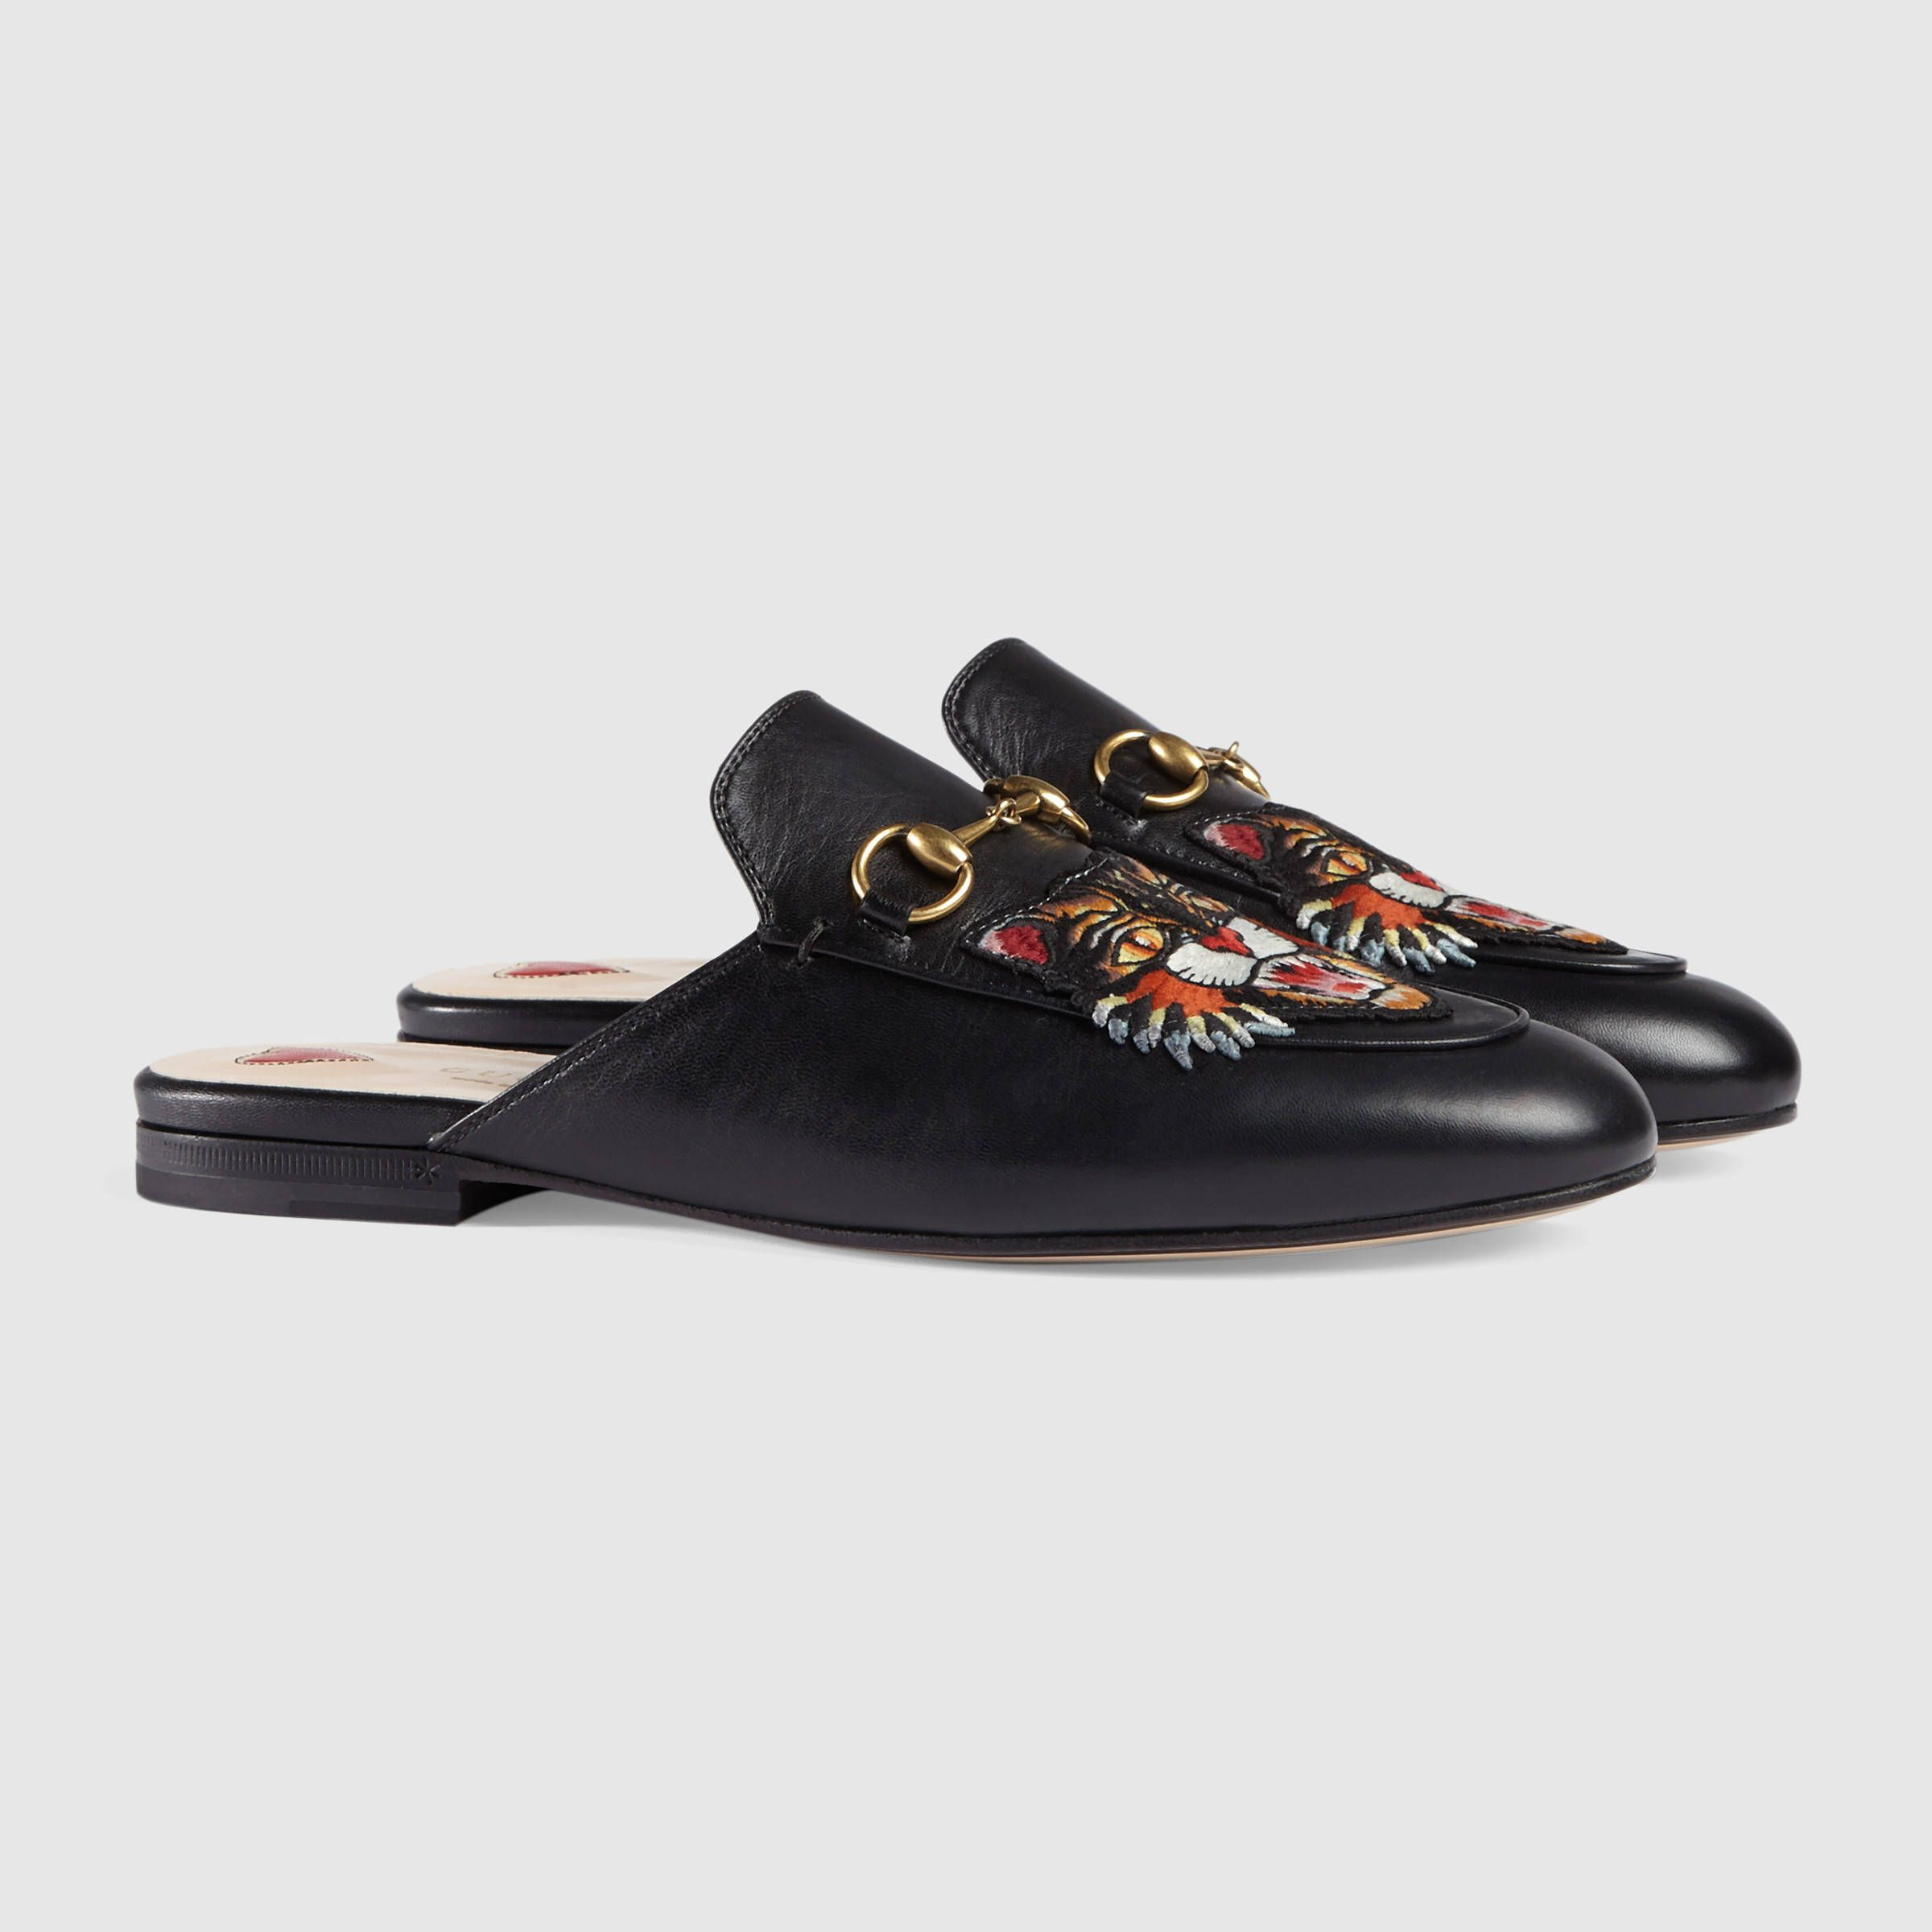 758757178 Gucci Princetown leather slipper with angry cat Detail 2